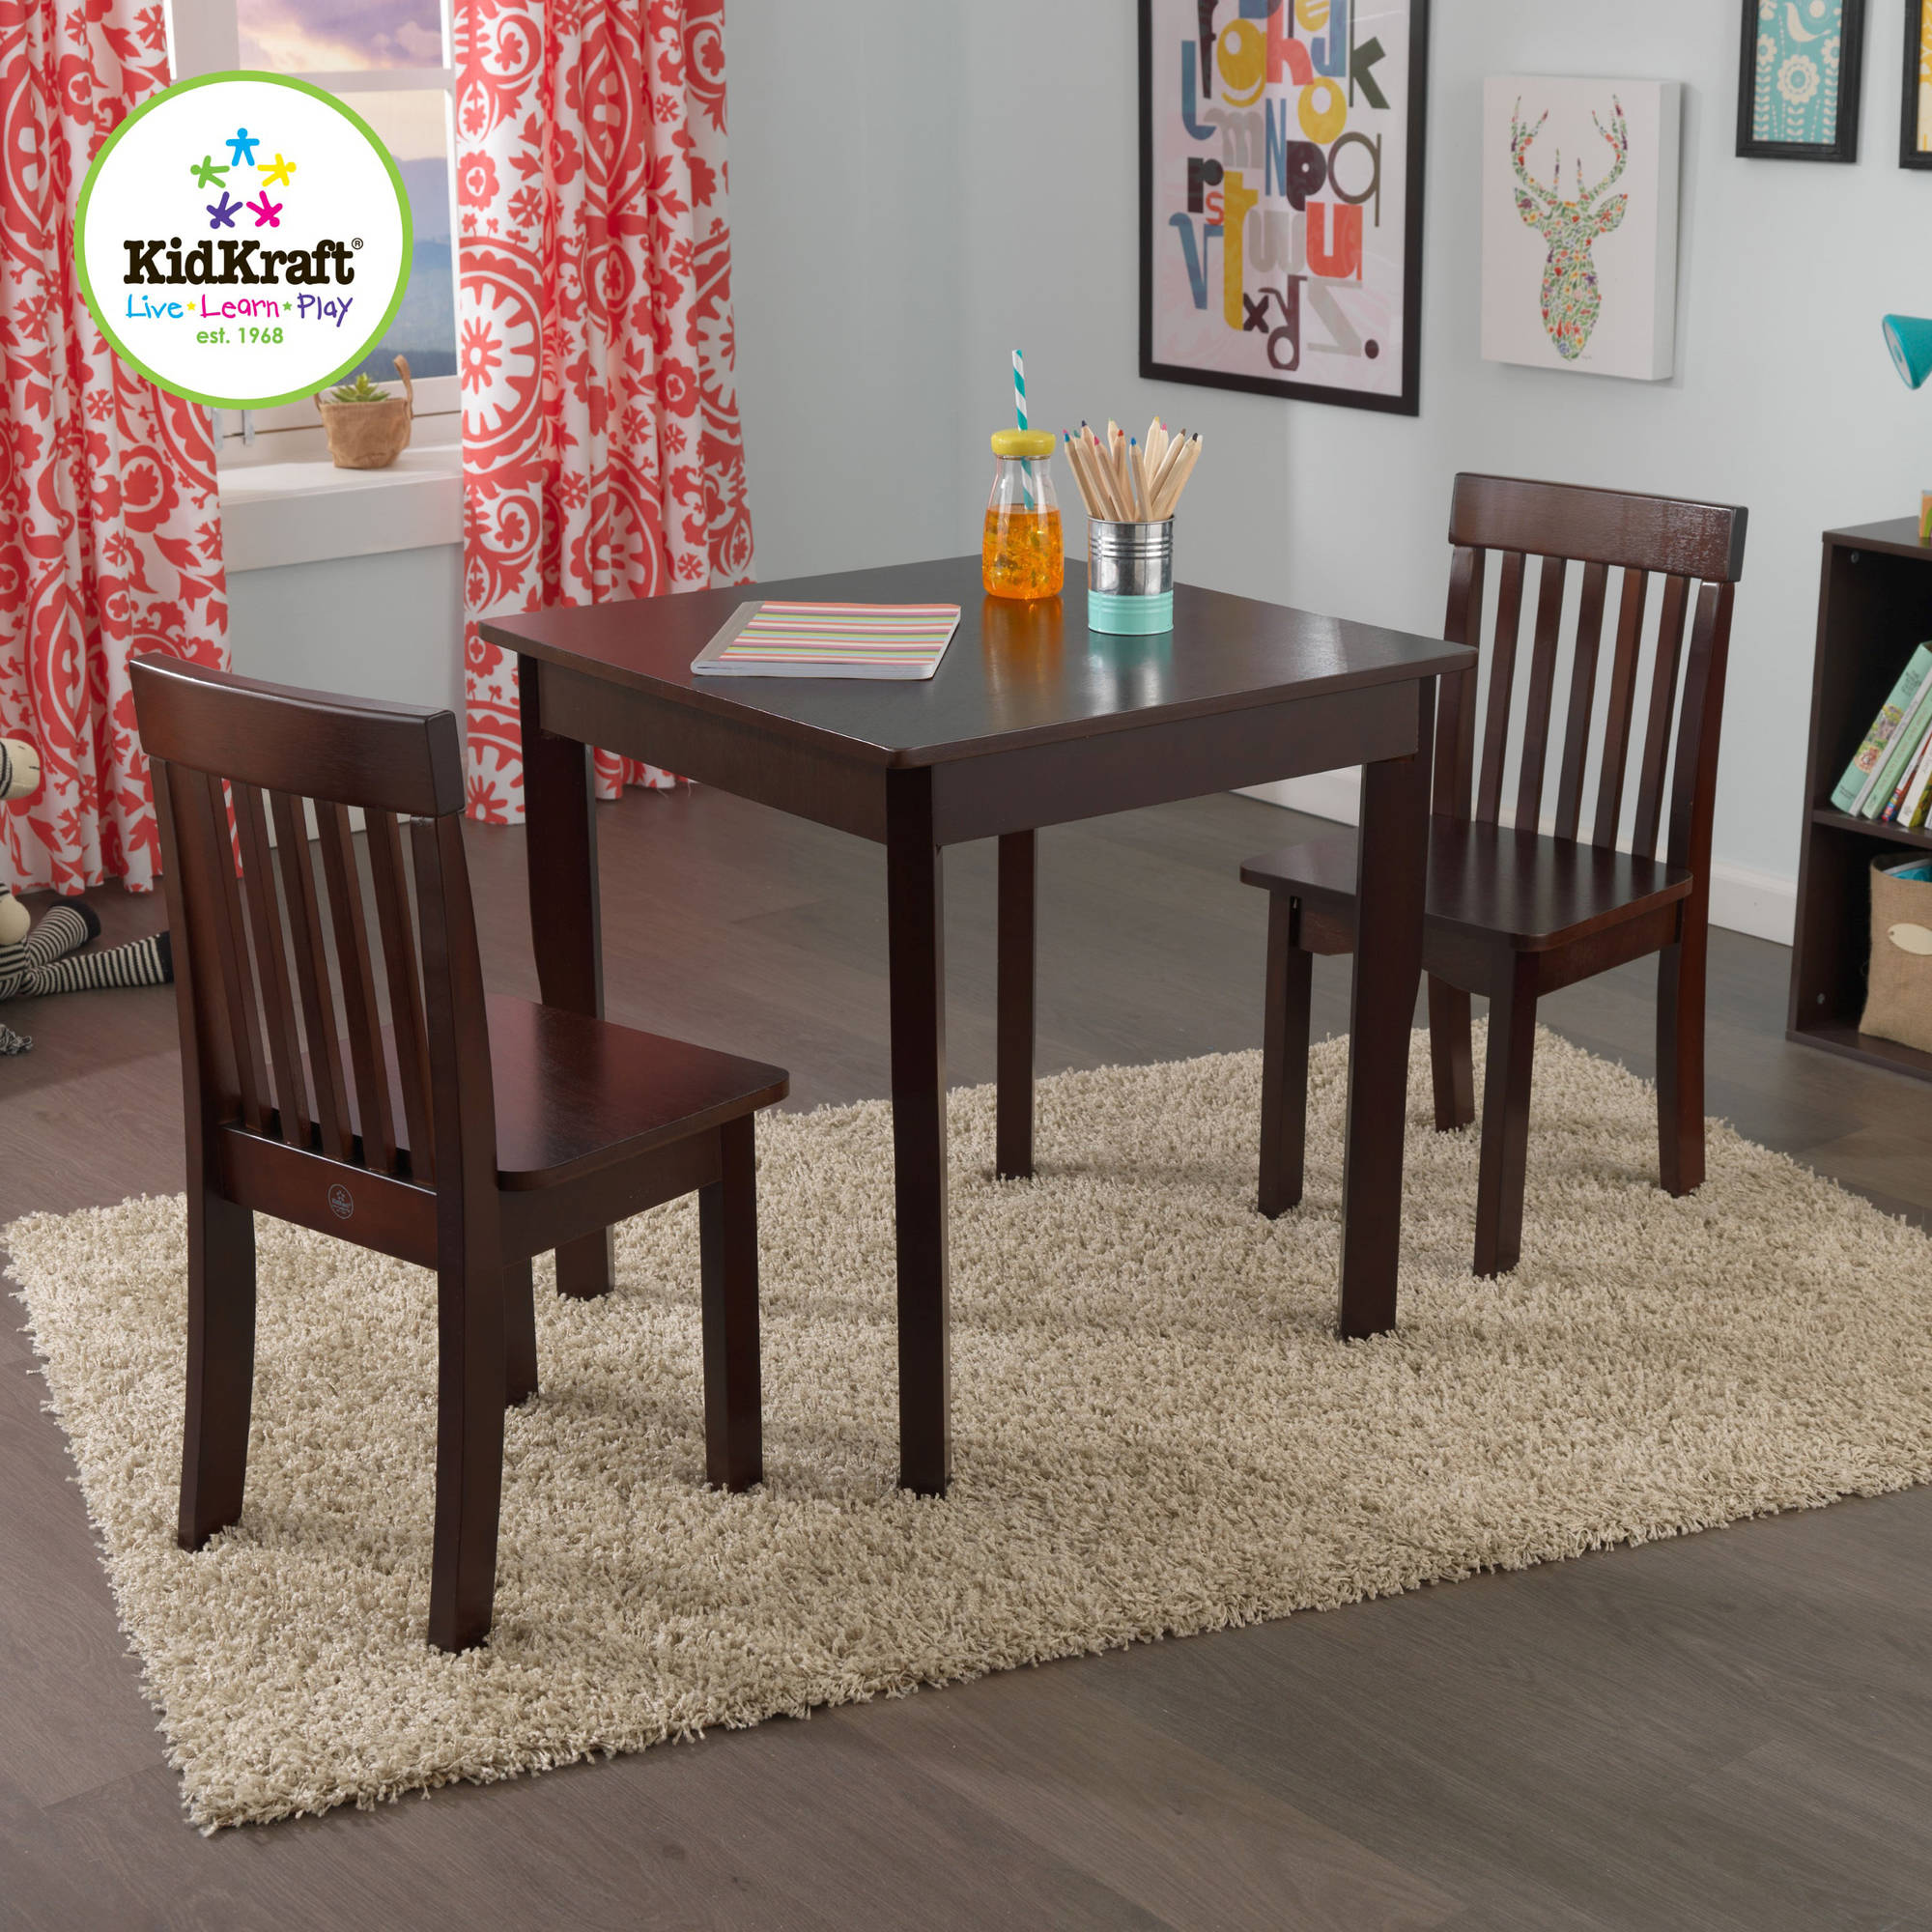 American Kids 5 Piece Wood Table and Chair Set Multiple Colors